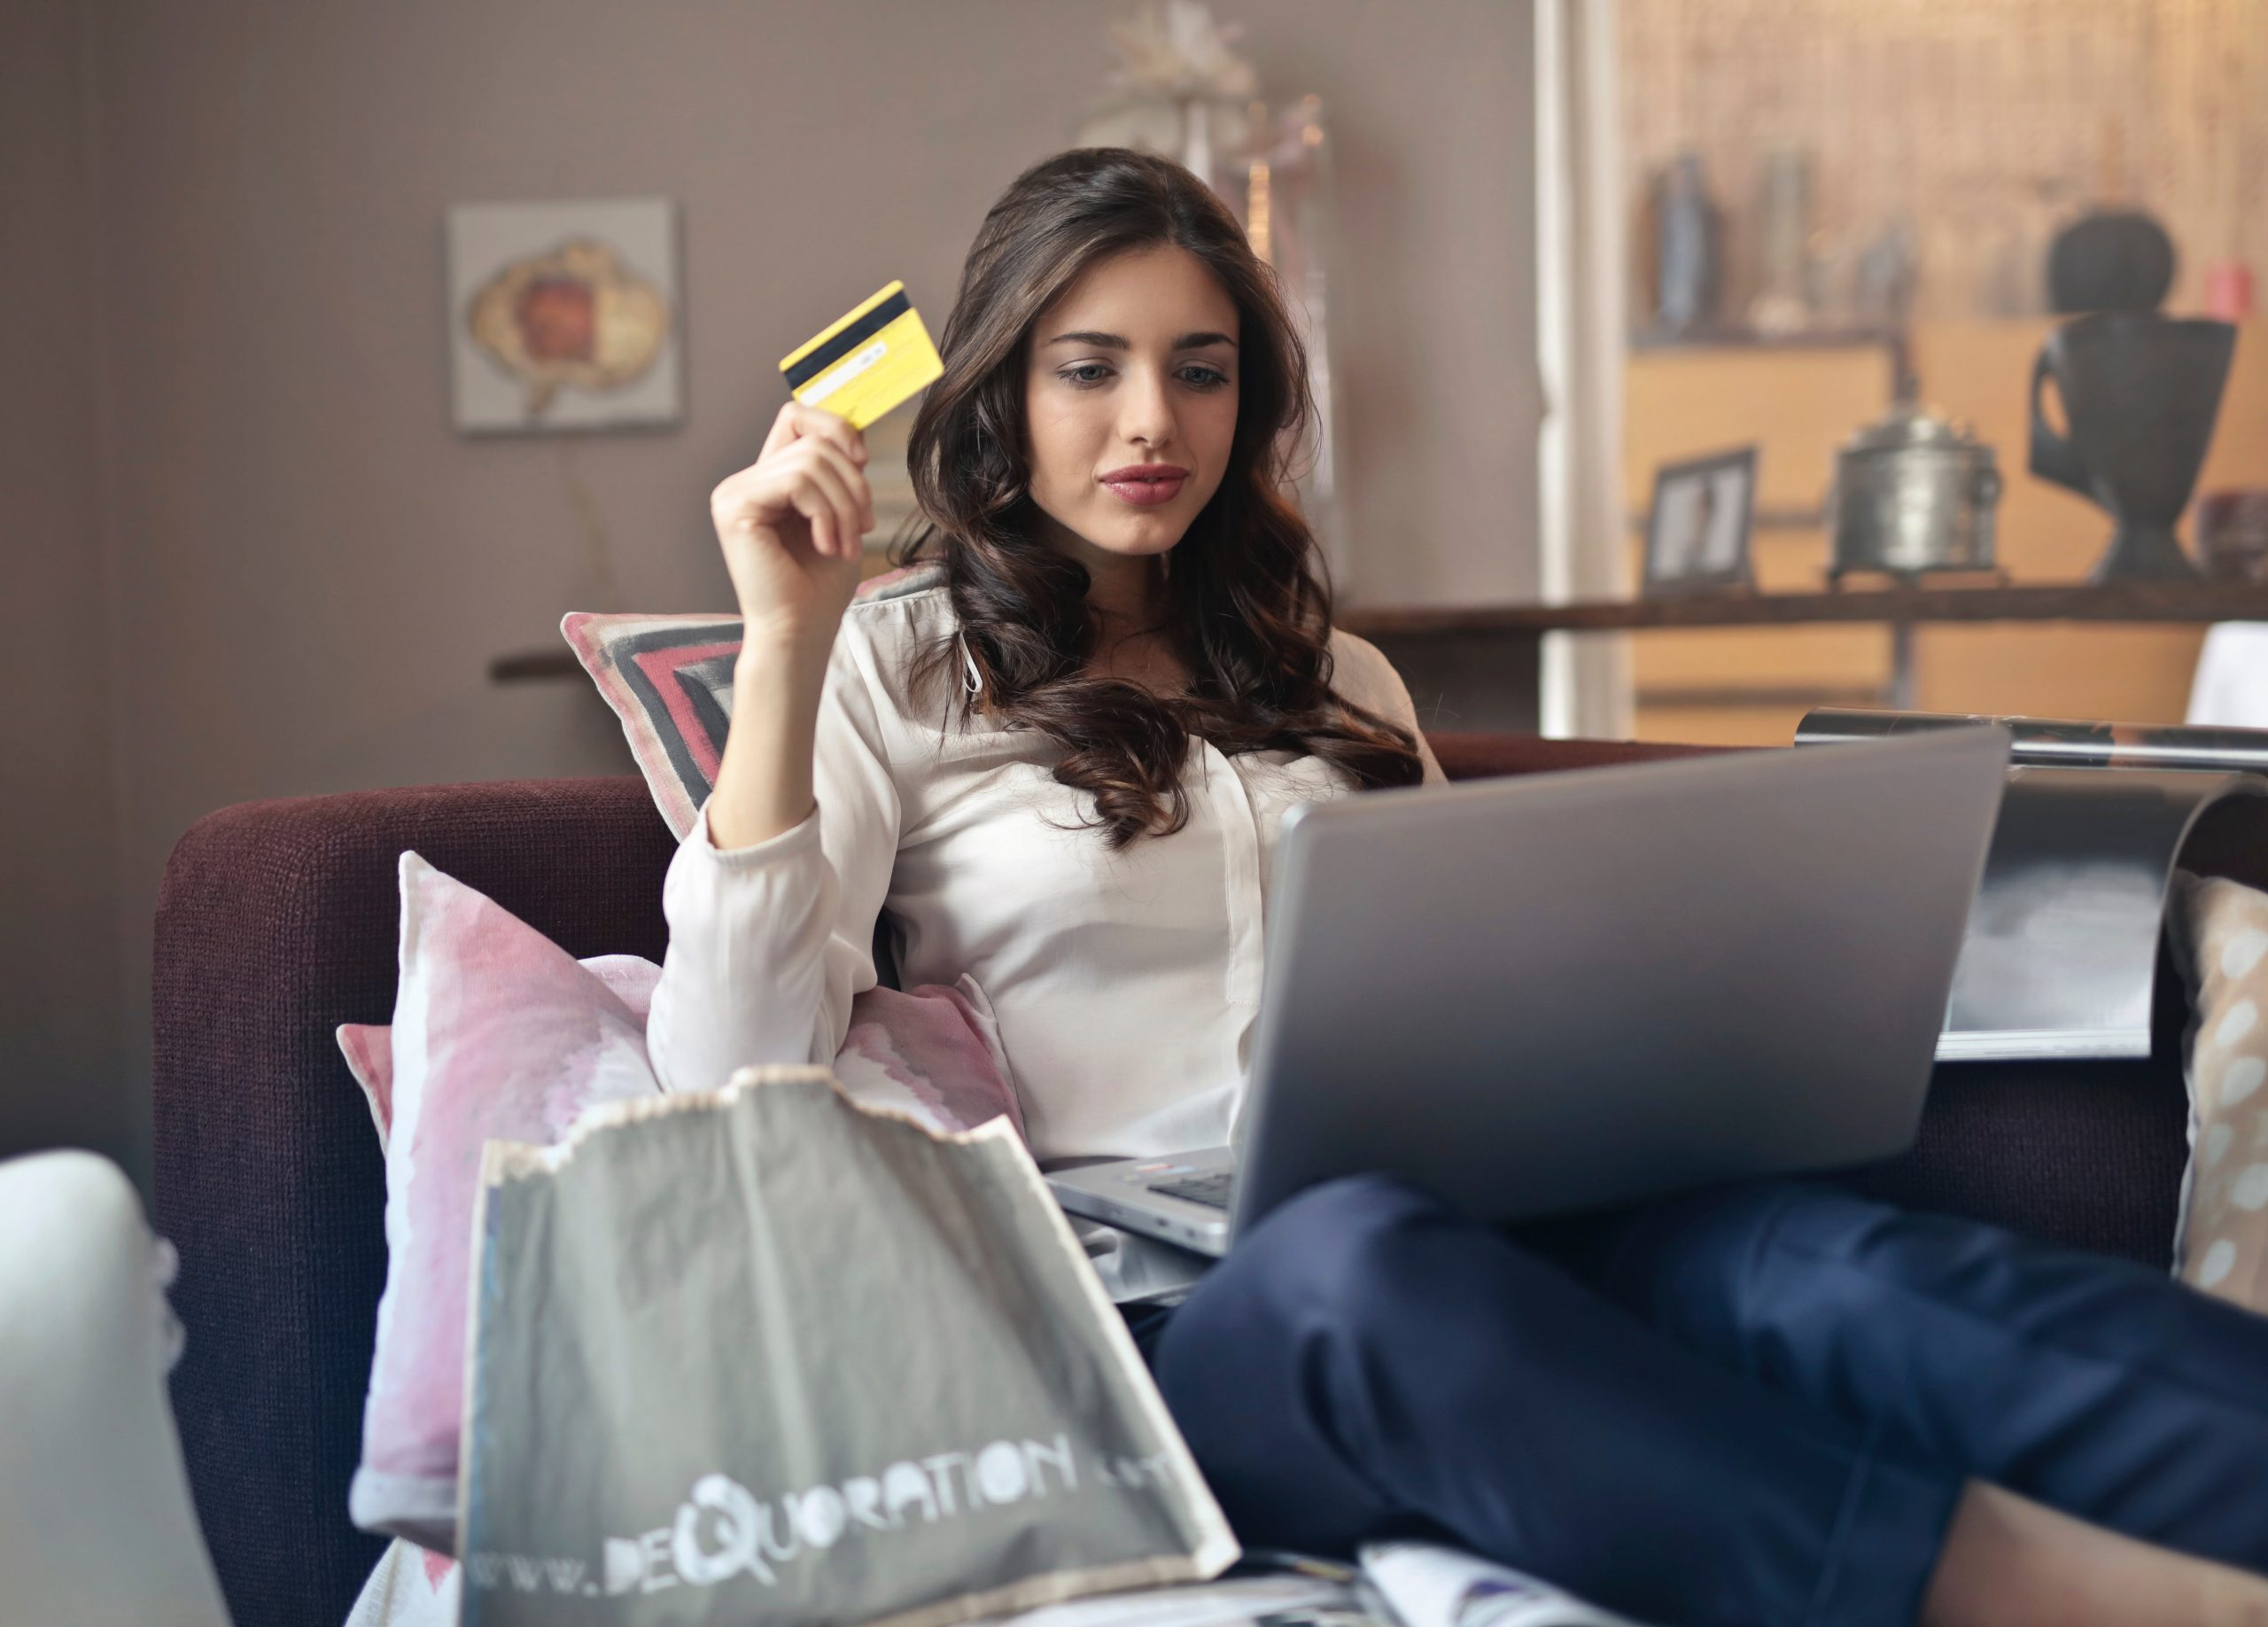 woman-holding-credit-card-while-operating-silver-laptop